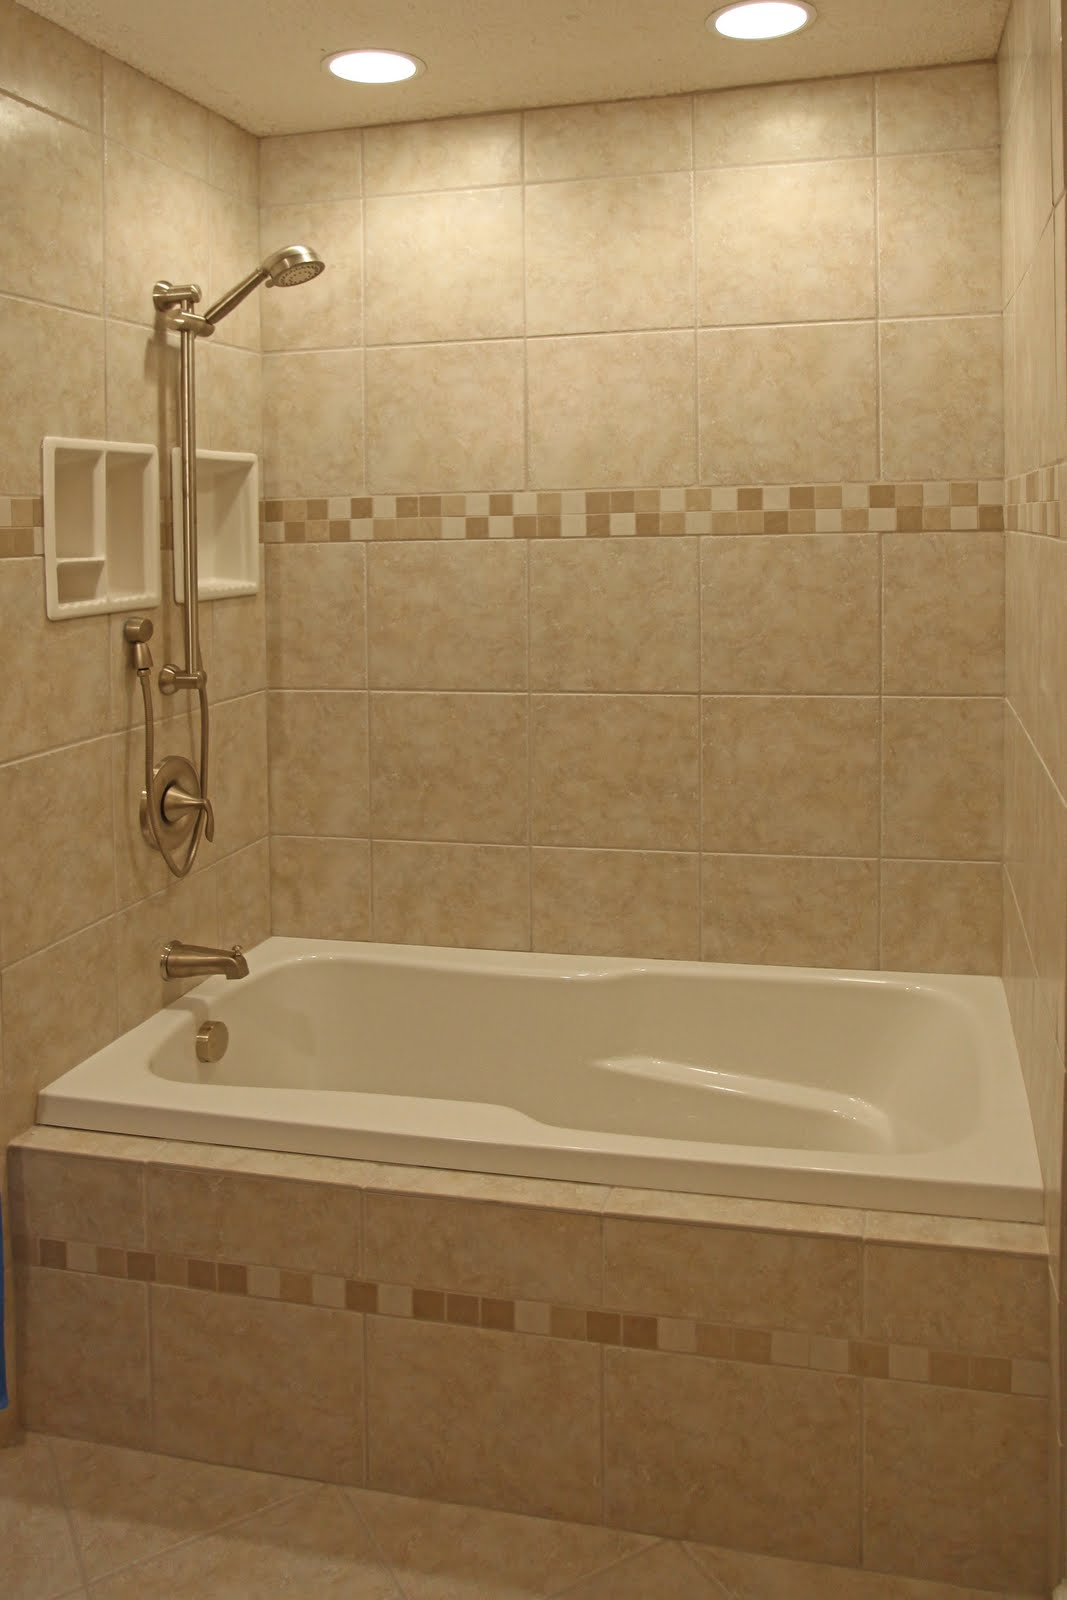 Bathroom Shower Tile Design Ideas | Bathroom Designs in ...